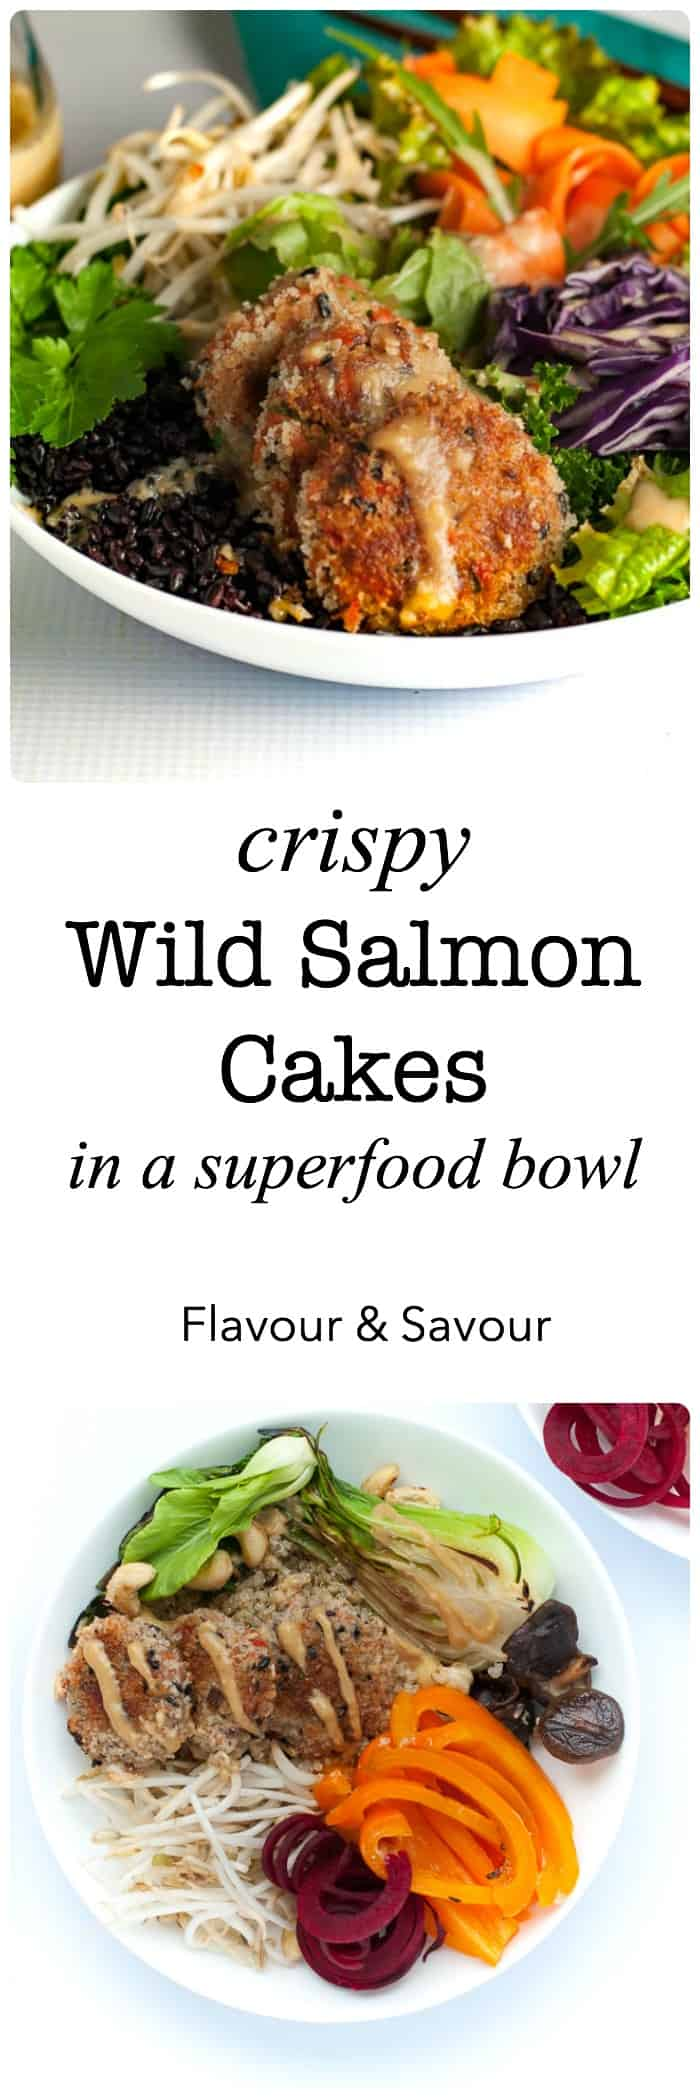 Crispy Wild Salmon Cakes made with RaincoastTrading wild sockeye salmon! These make a yummy, nutritious dinner and they also make fabulous, bite-sized appetizers! |www.flavourandsavour.com